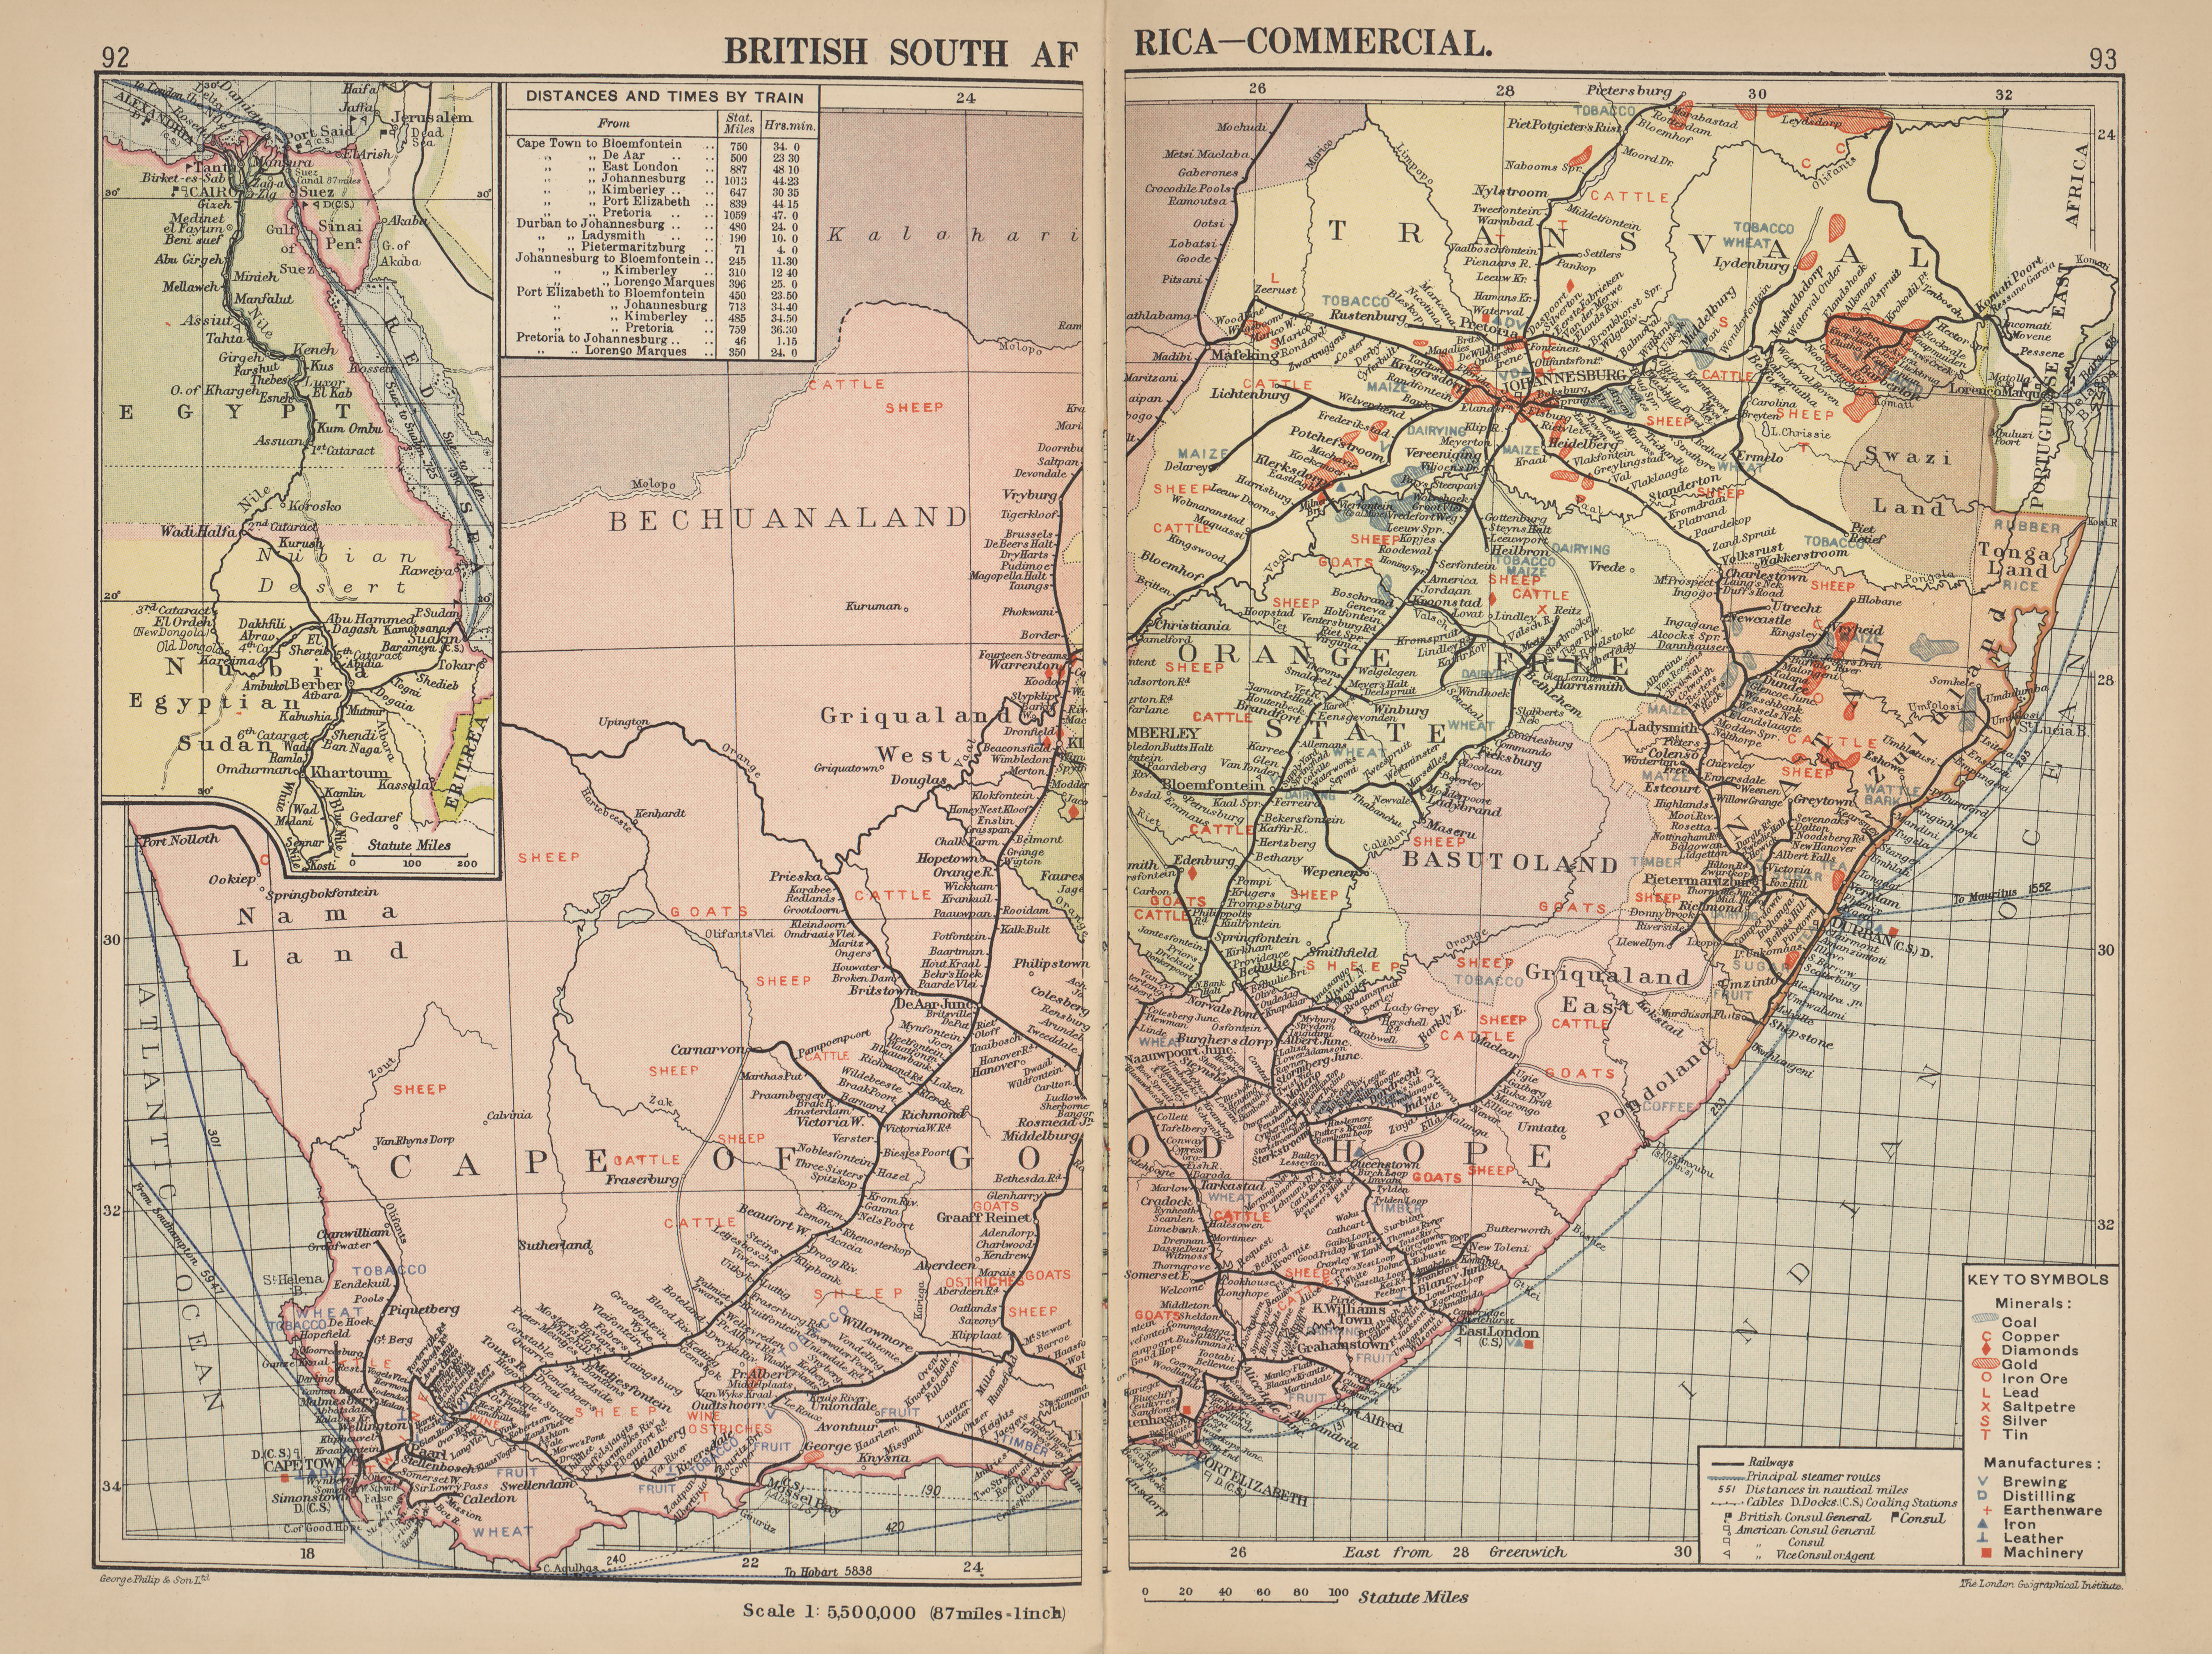 Maps from philips chamber of commerce atlas perry castaeda map british south africa commercial gumiabroncs Images